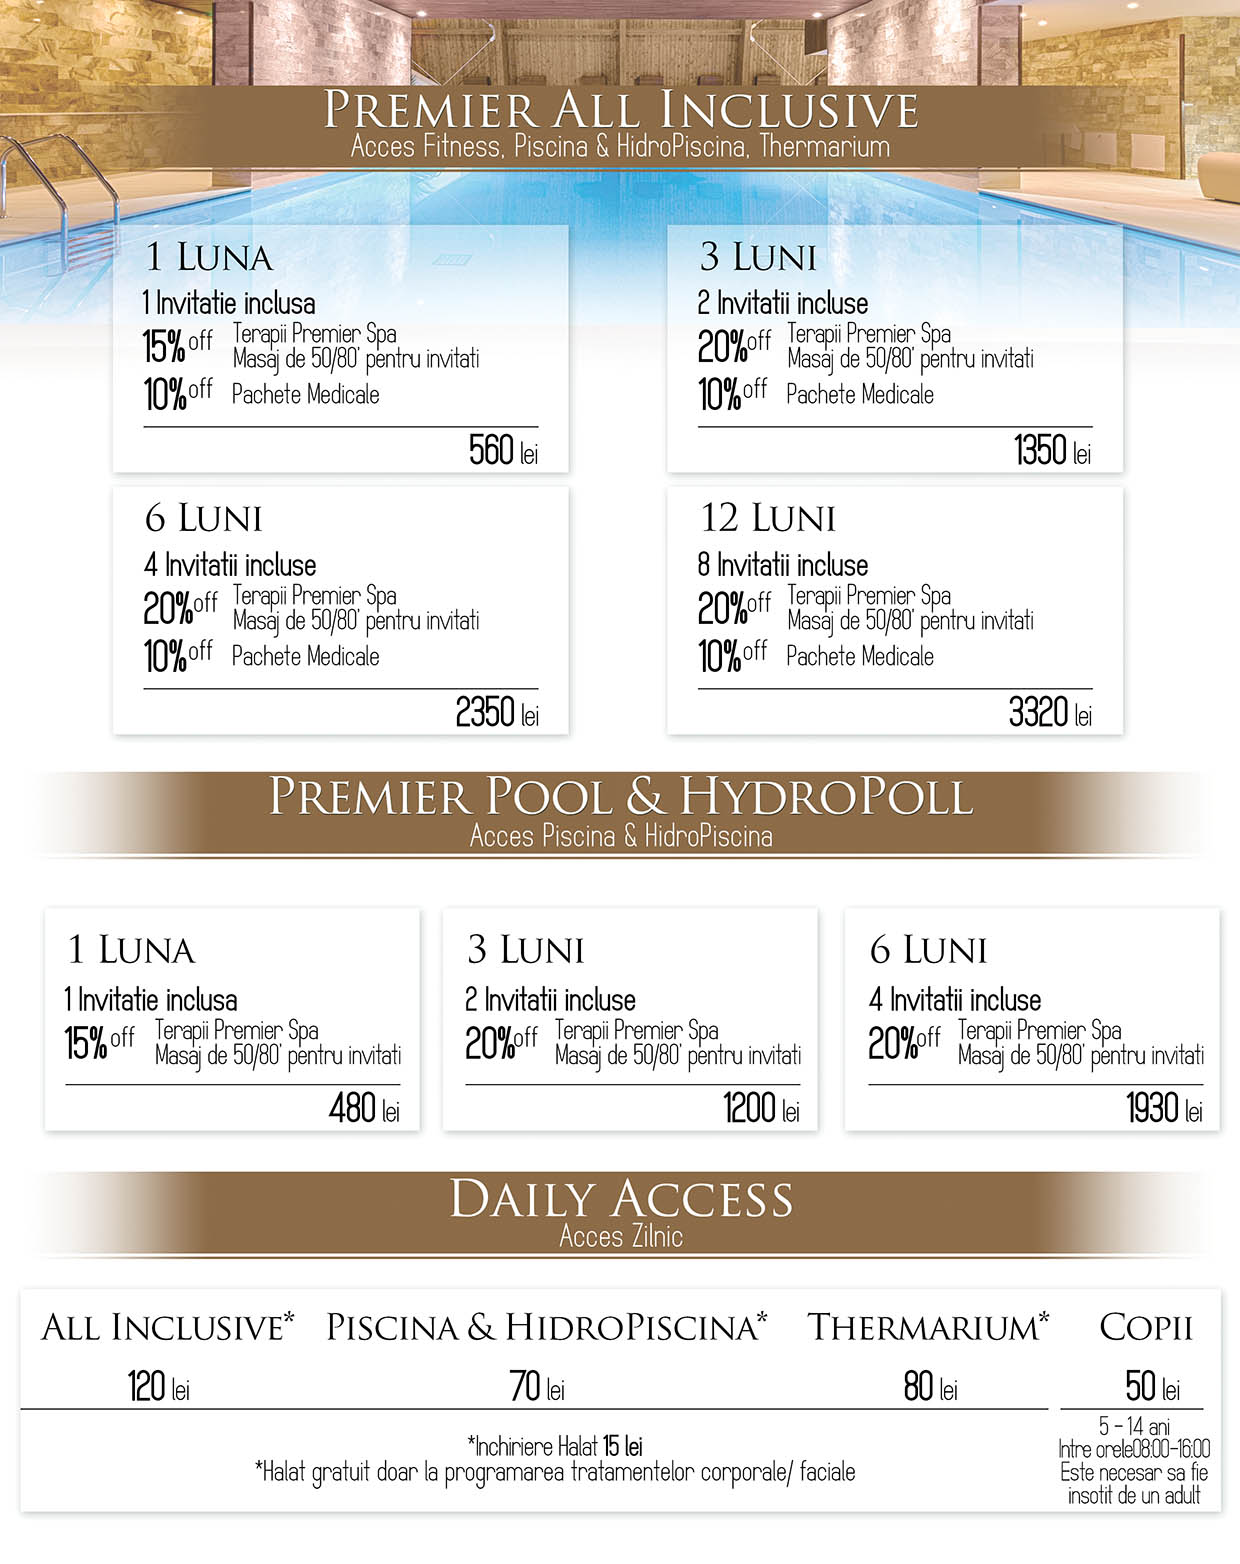 Premier Spa Rates Premier All Inclusive